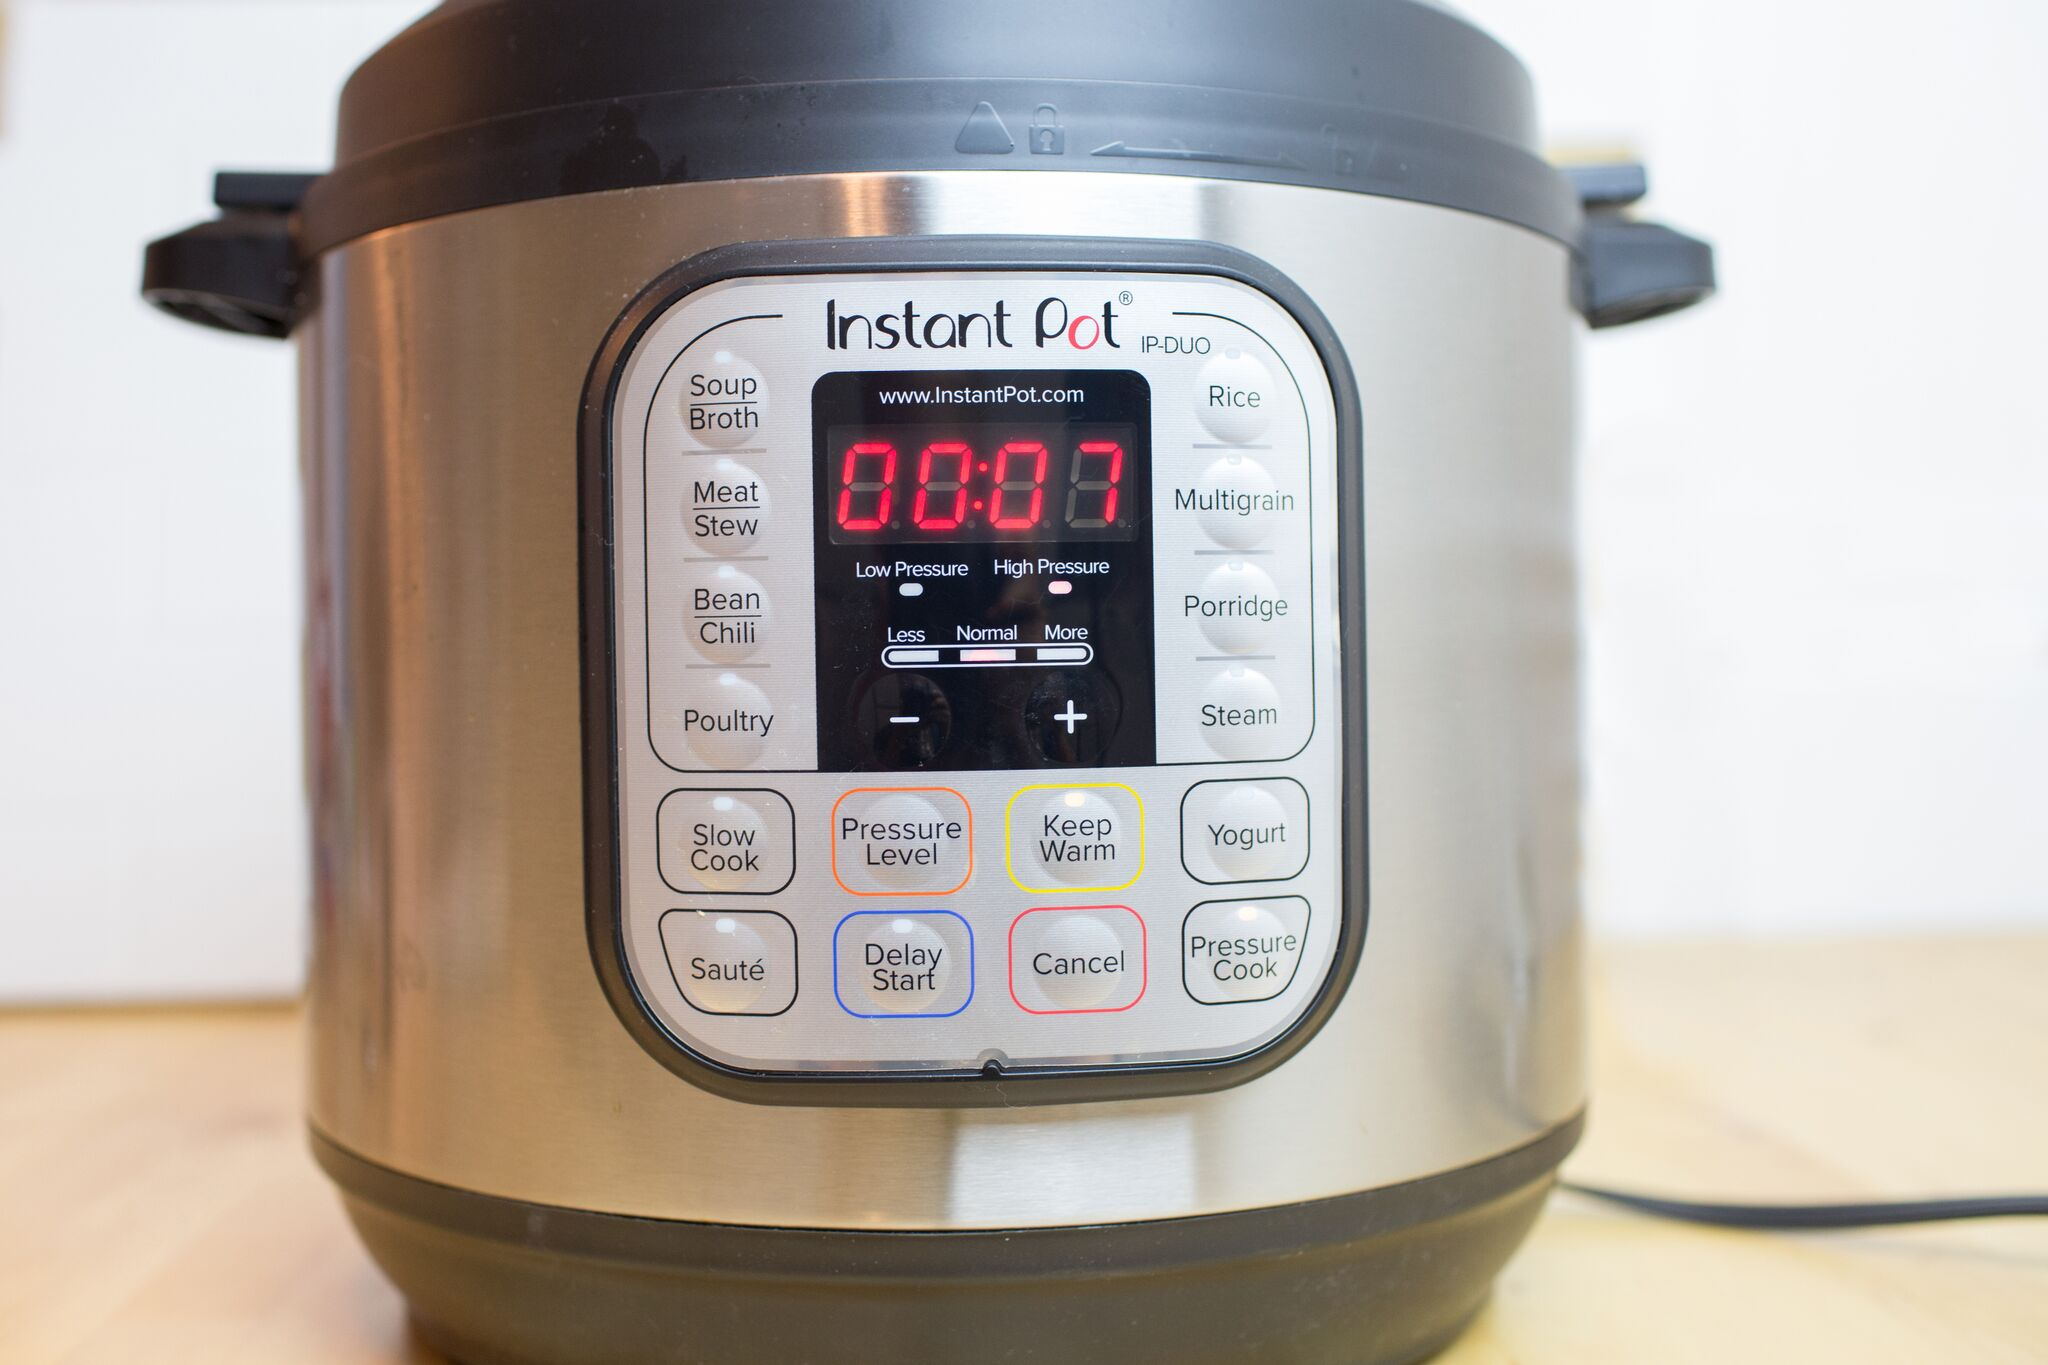 Secure lid on Instant Pot and cook apples on high pressure for 7 minutes.